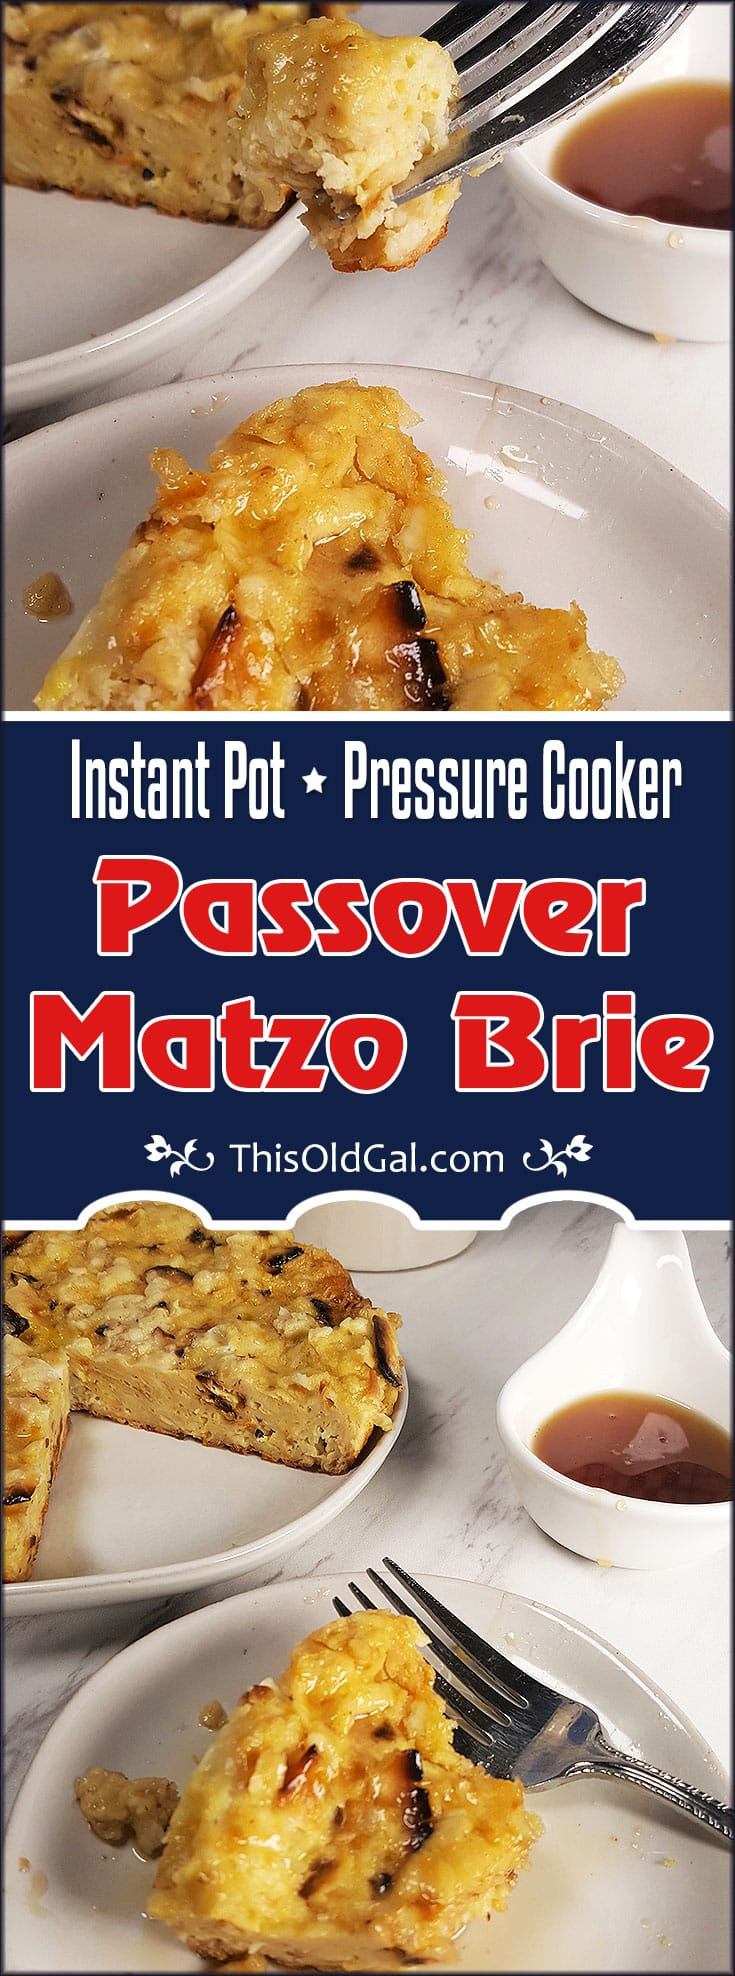 Instant Pot Passover Matzo Brie {Jewish French Toast}